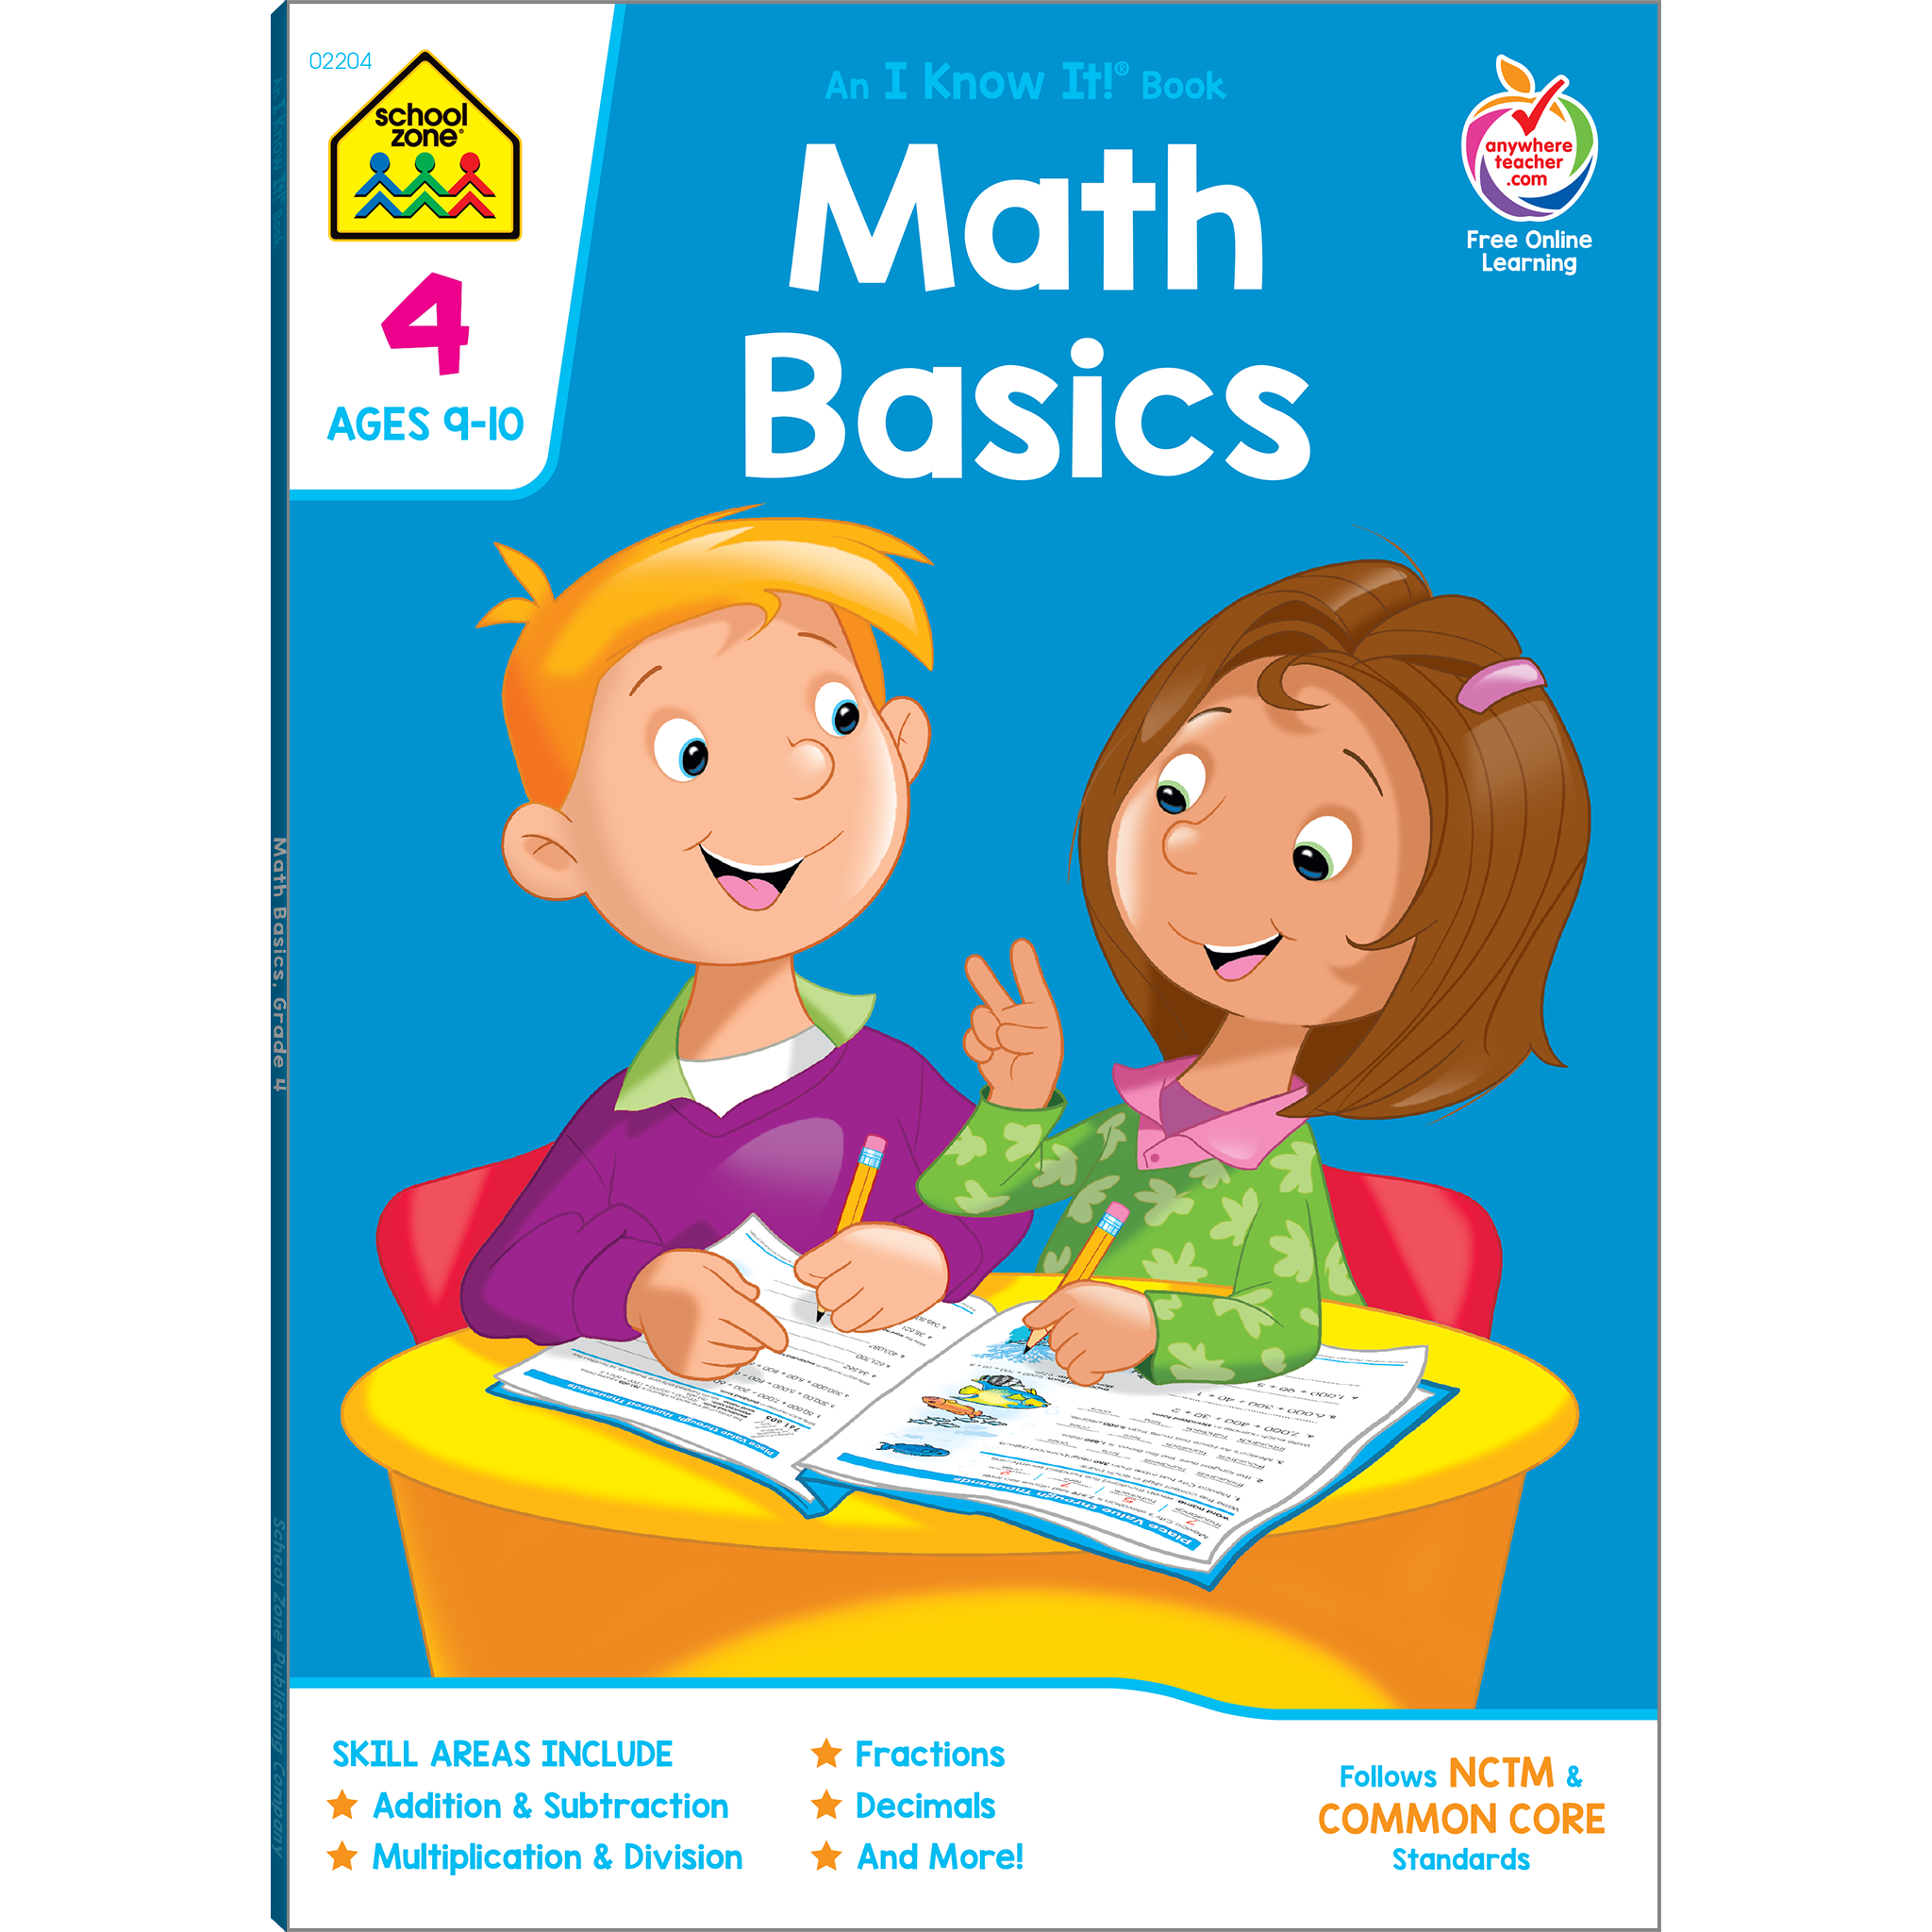 Multiplication clipart difficult math. Basics workbook makes learning